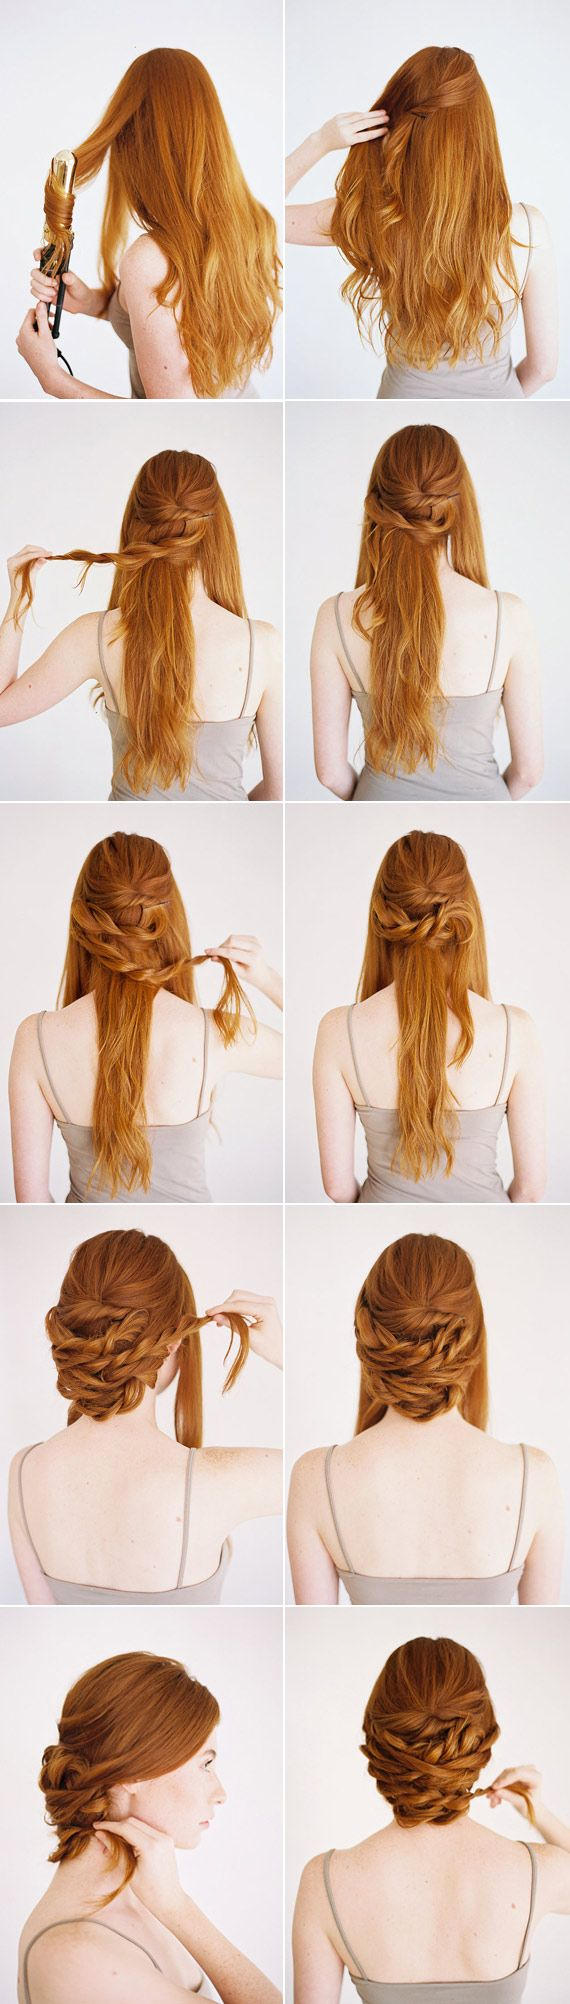 How-to create a low twisted updo - there's a lot of room for clip in extensions & fillers here, especially in the middle of the hairstyle.